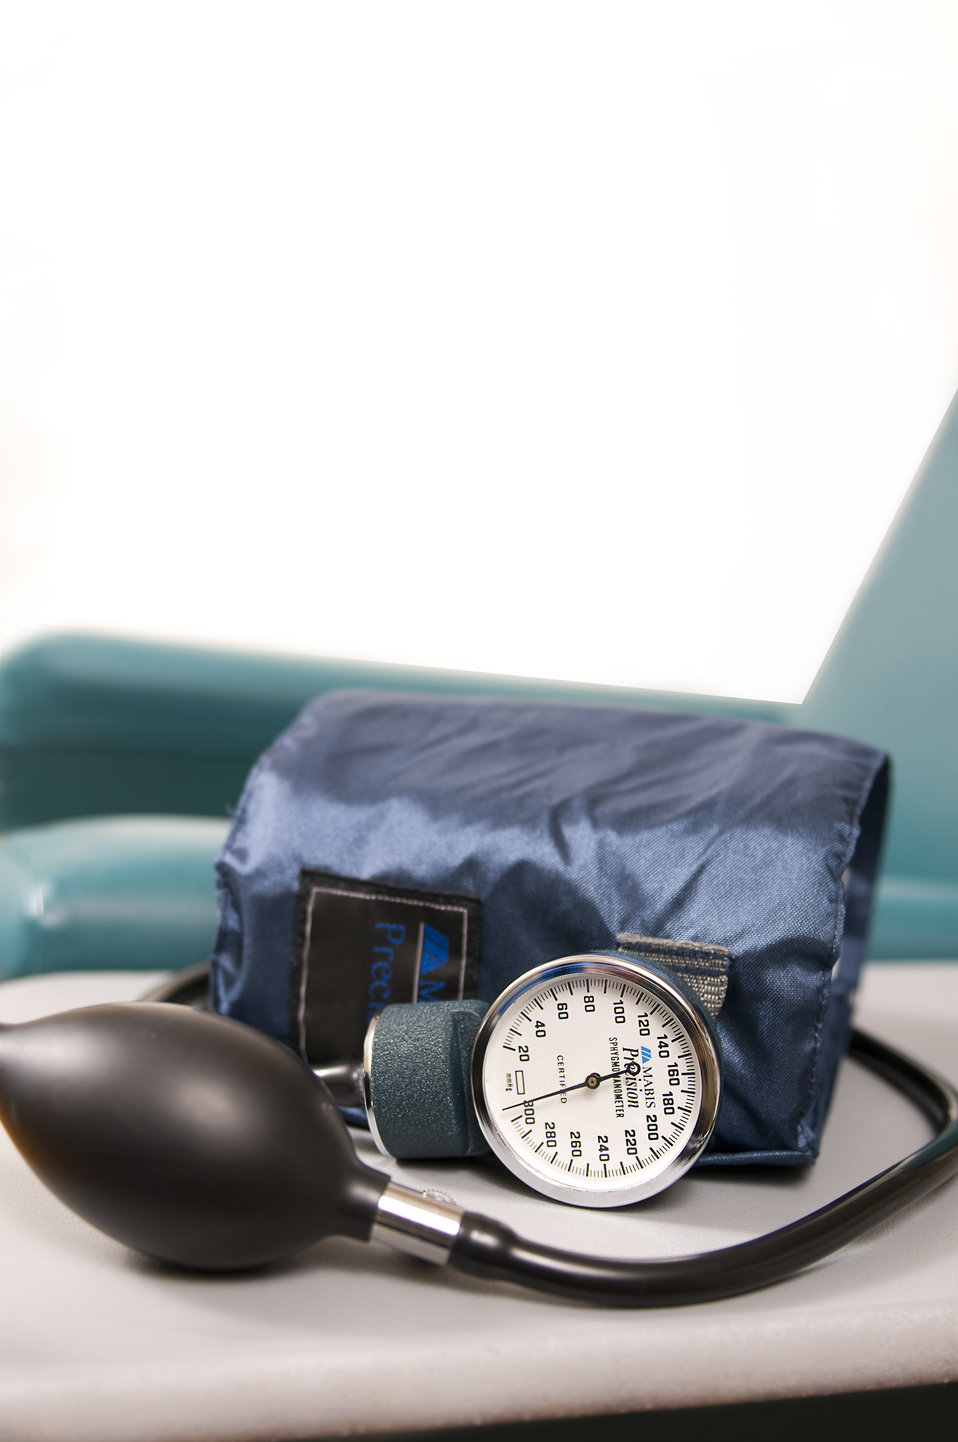 In order for a healthcare provider to measure a patient's blood pressure a sphygmomanometer will be used. Pictured here, this device consist